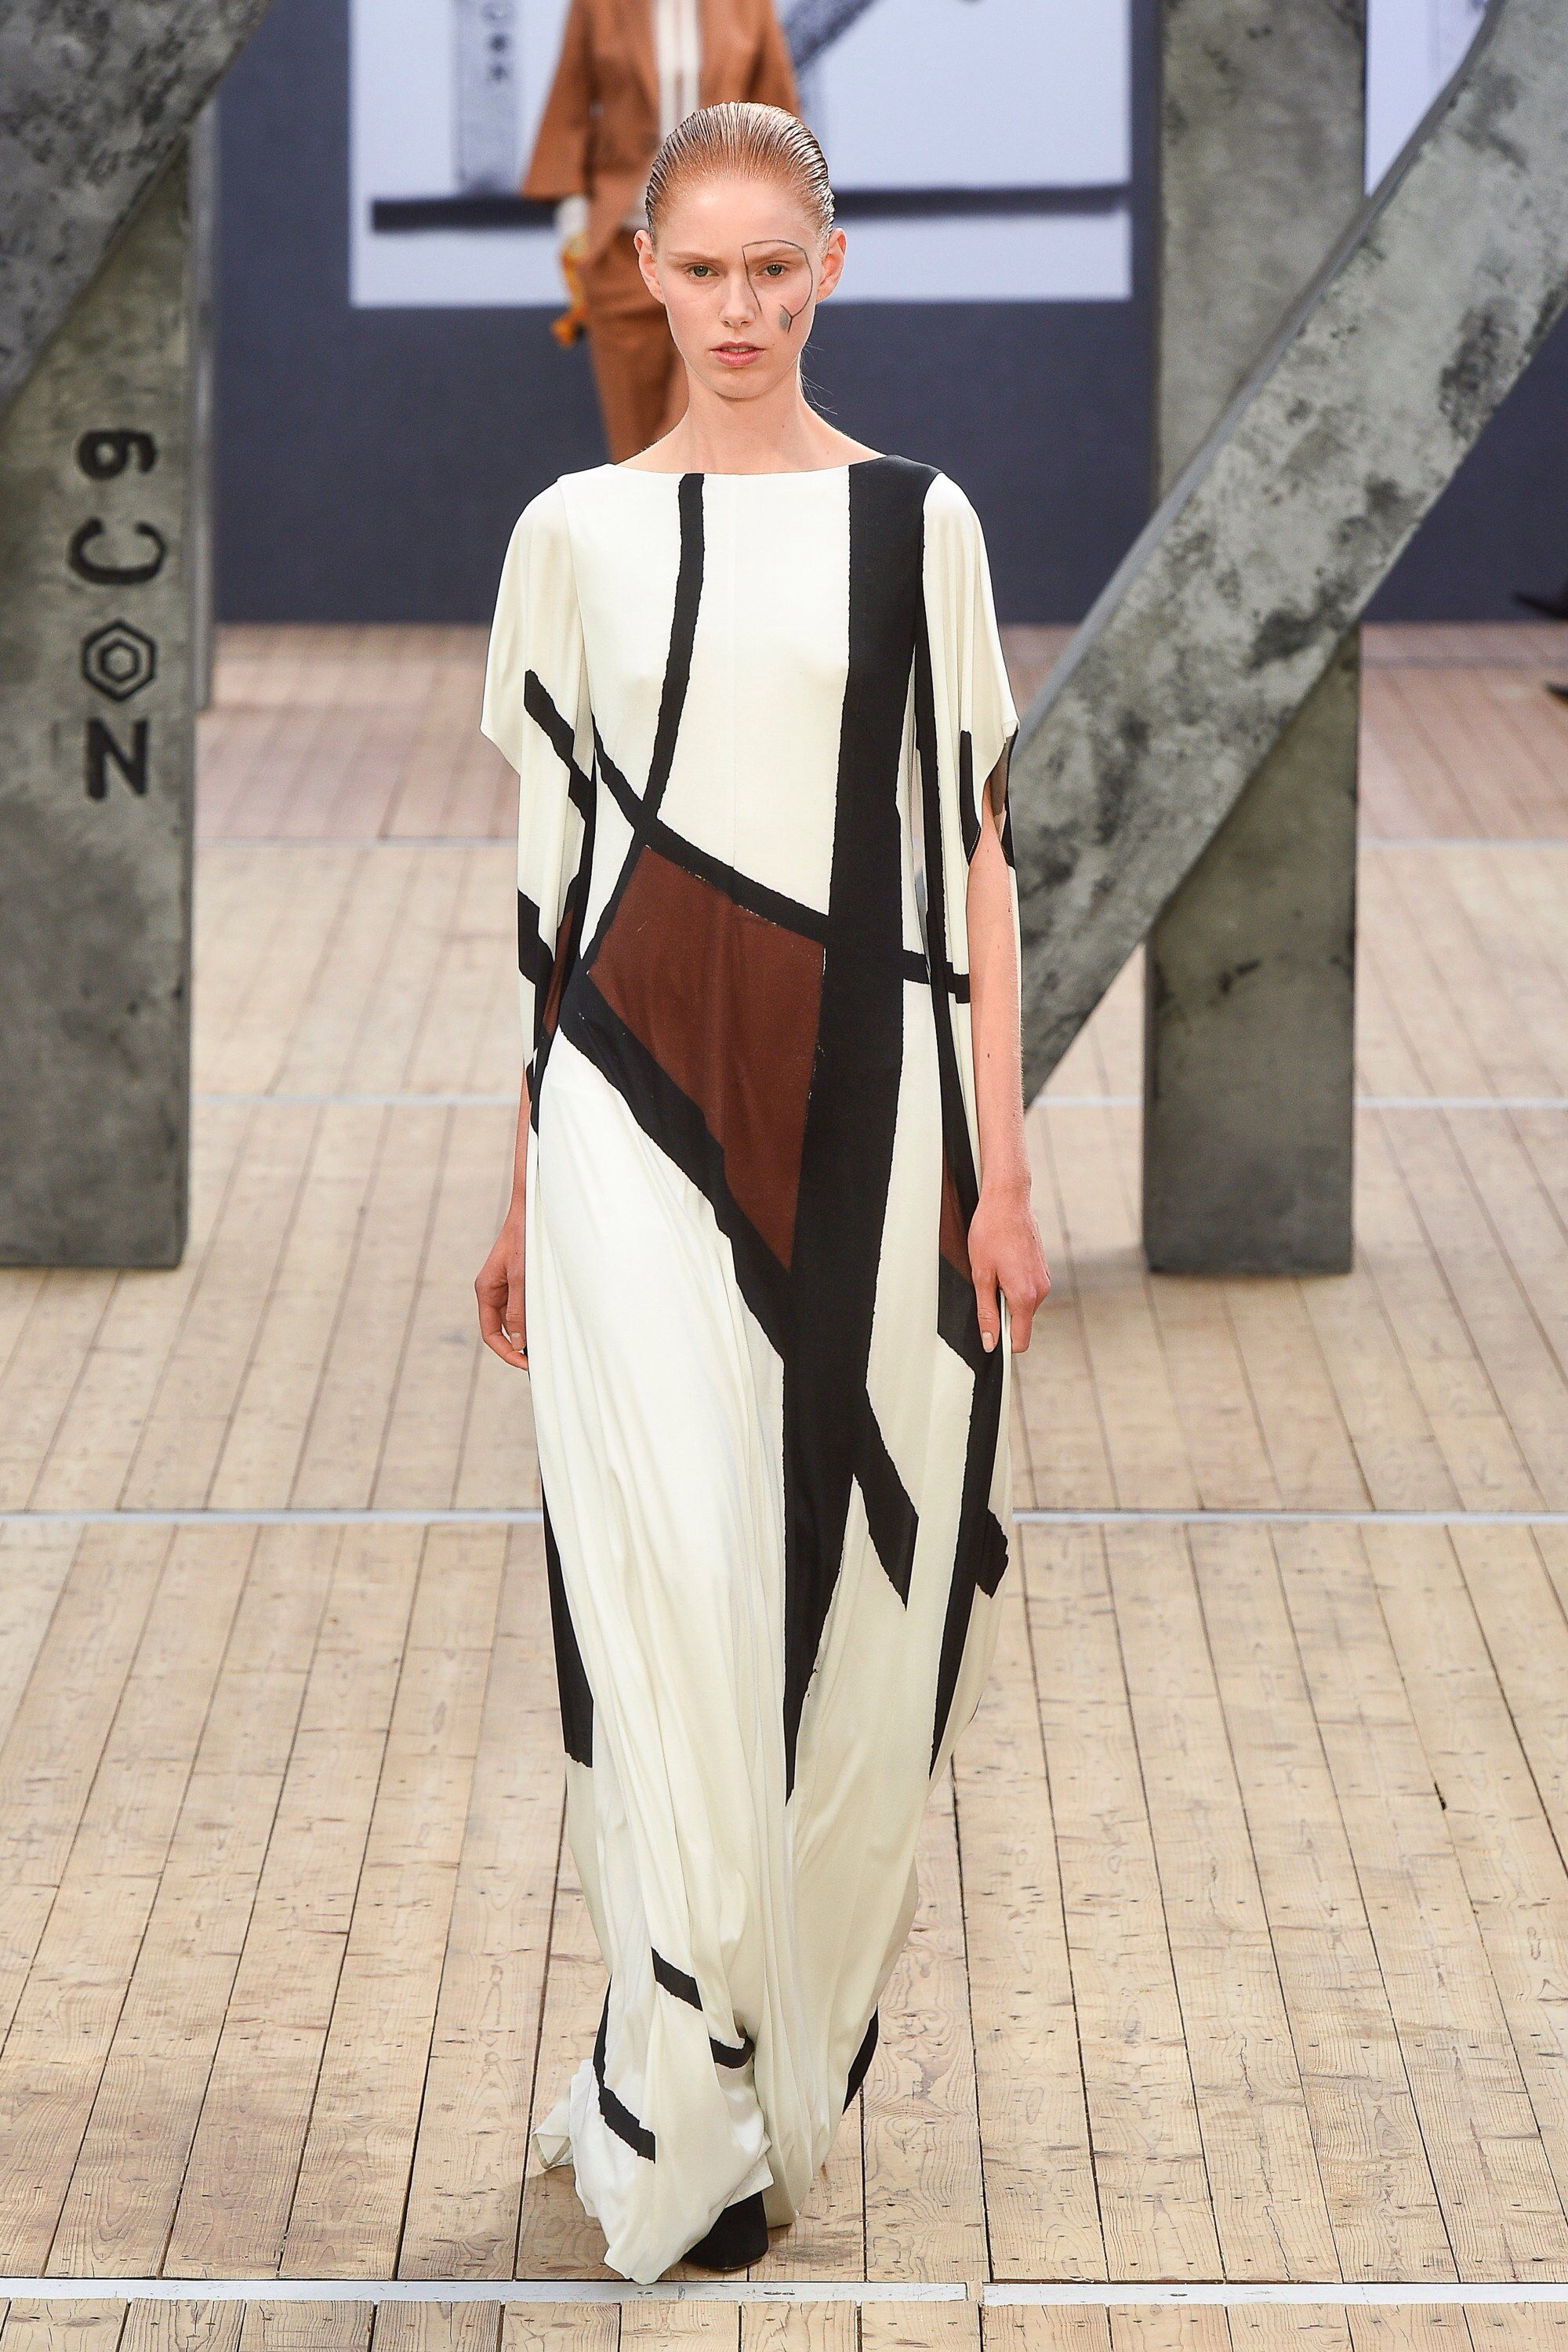 Was 2019 the year of modest fashion movement recommendations dress for summer in 2019